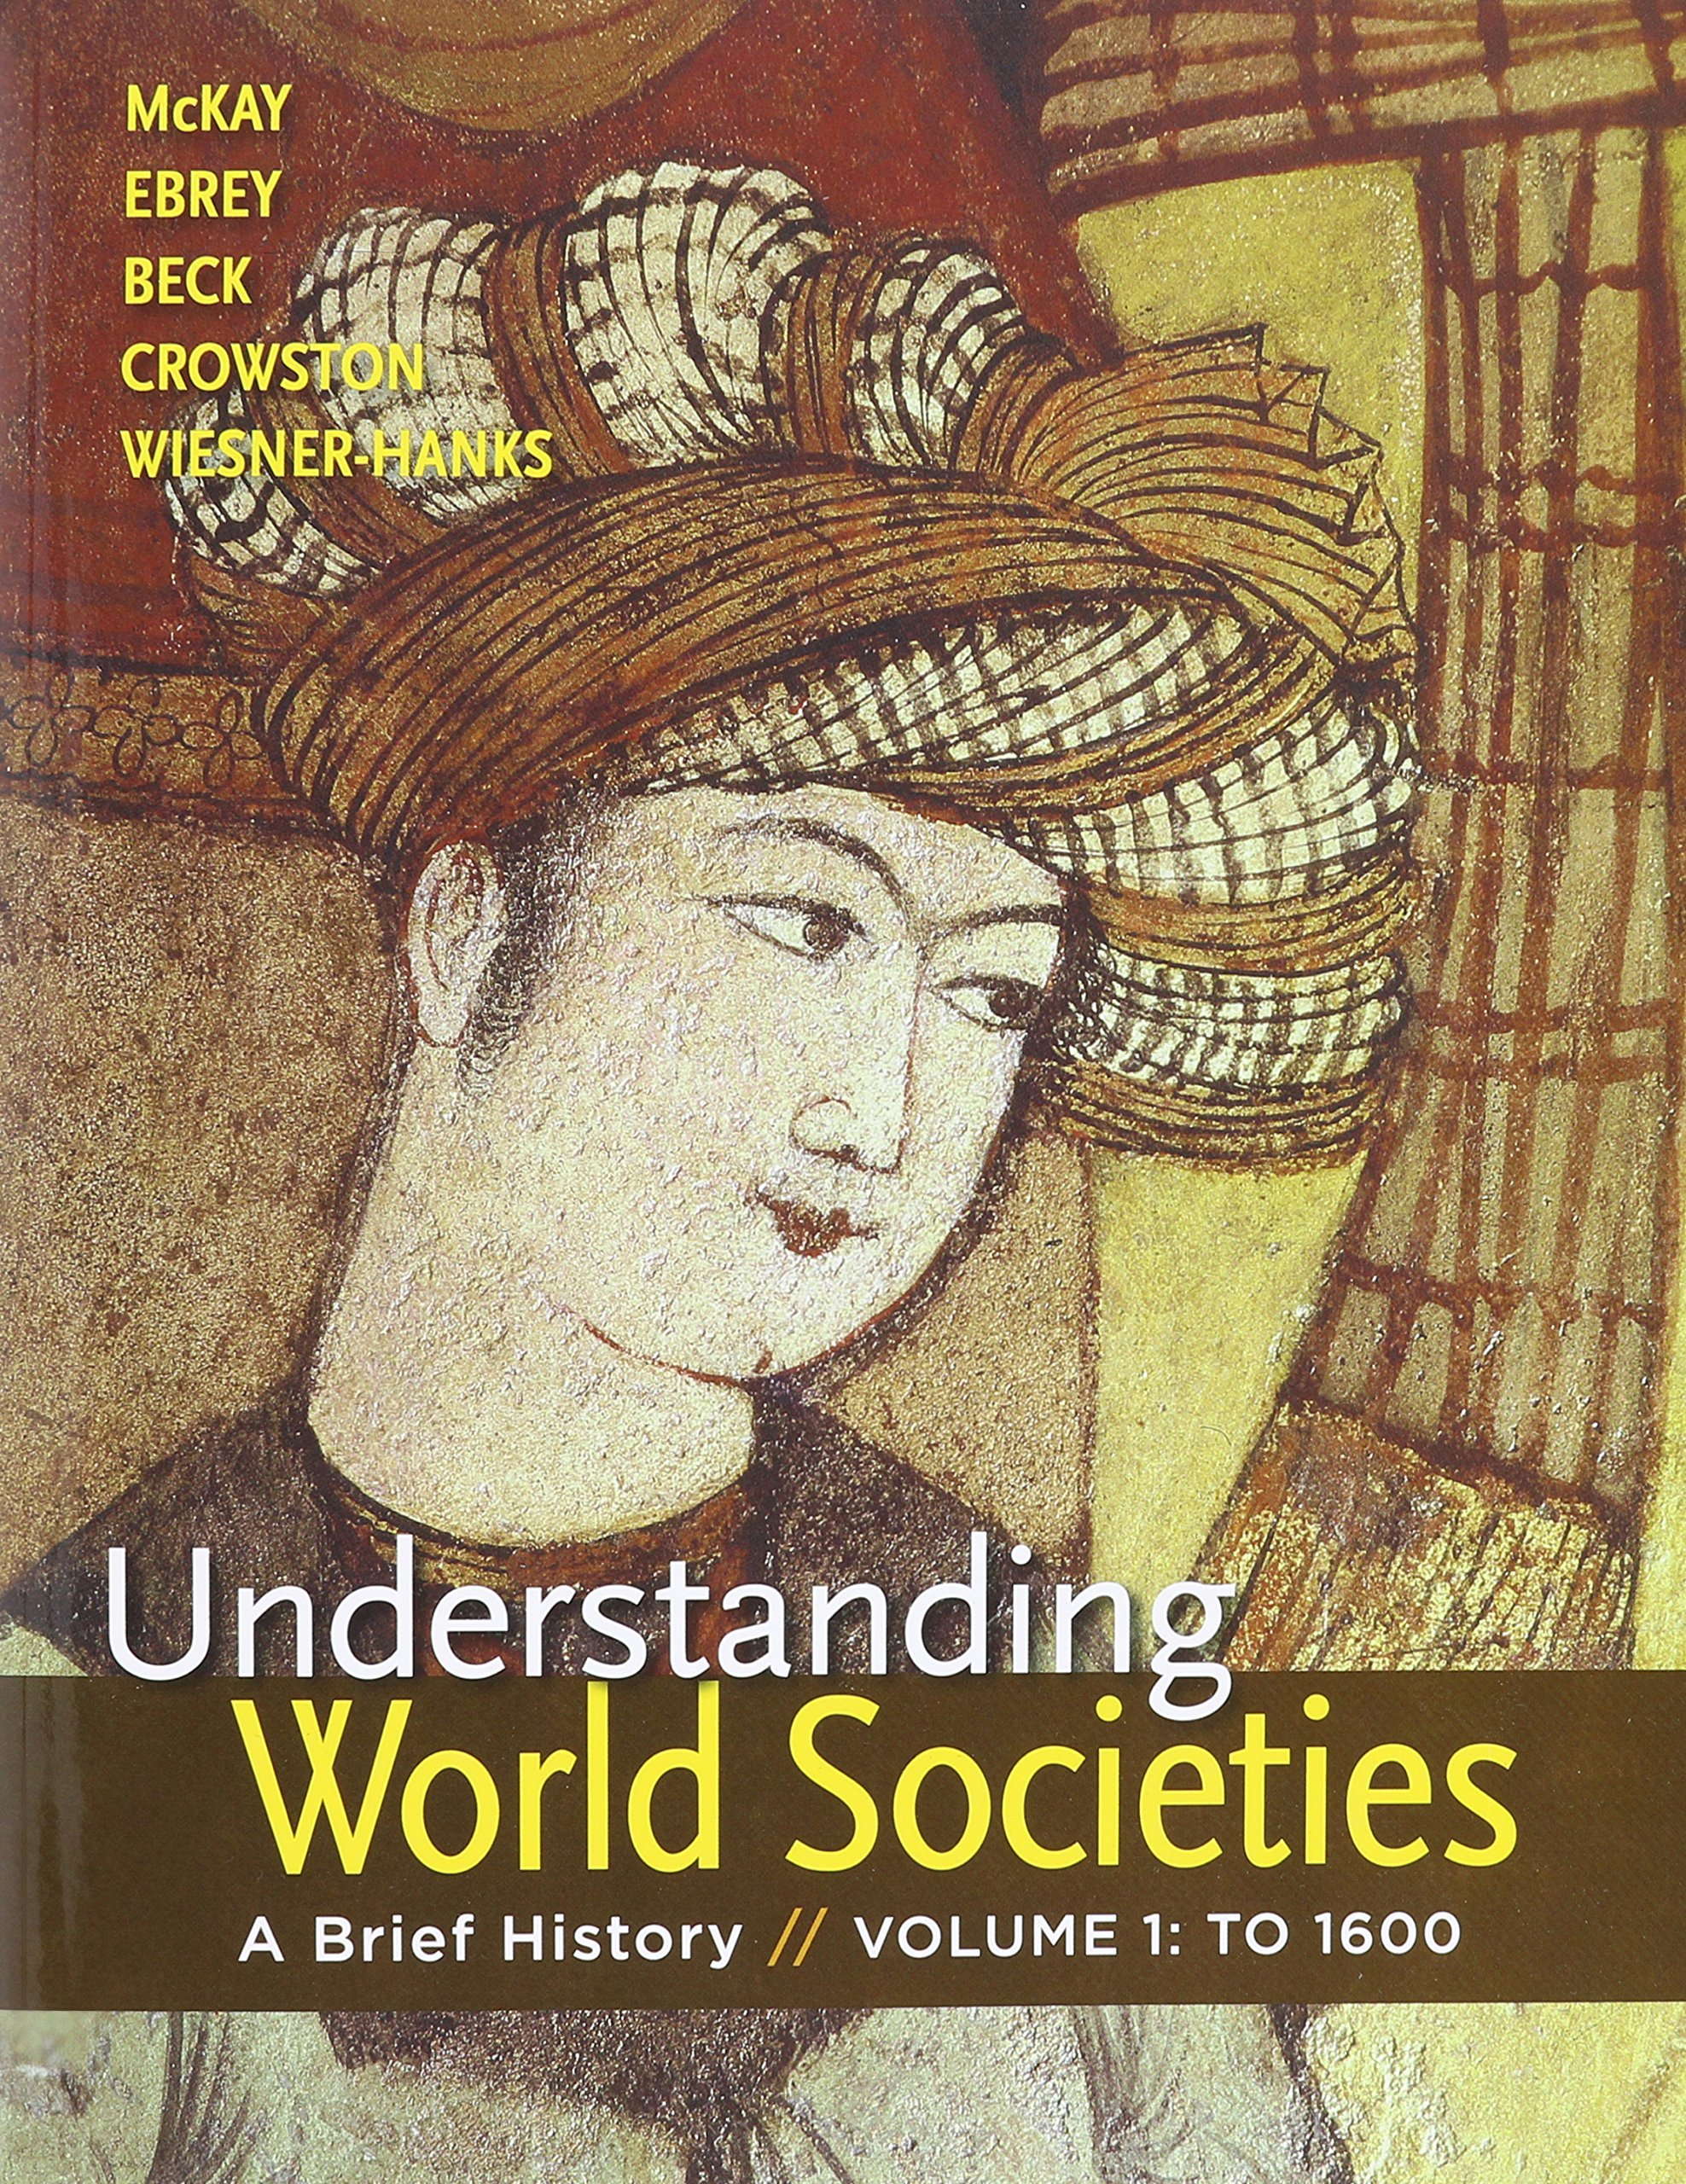 Buy Understanding World Societies + Sources of World Societies 9e V1 Book  Online at Low Prices in India | Understanding World Societies + Sources of  World ...